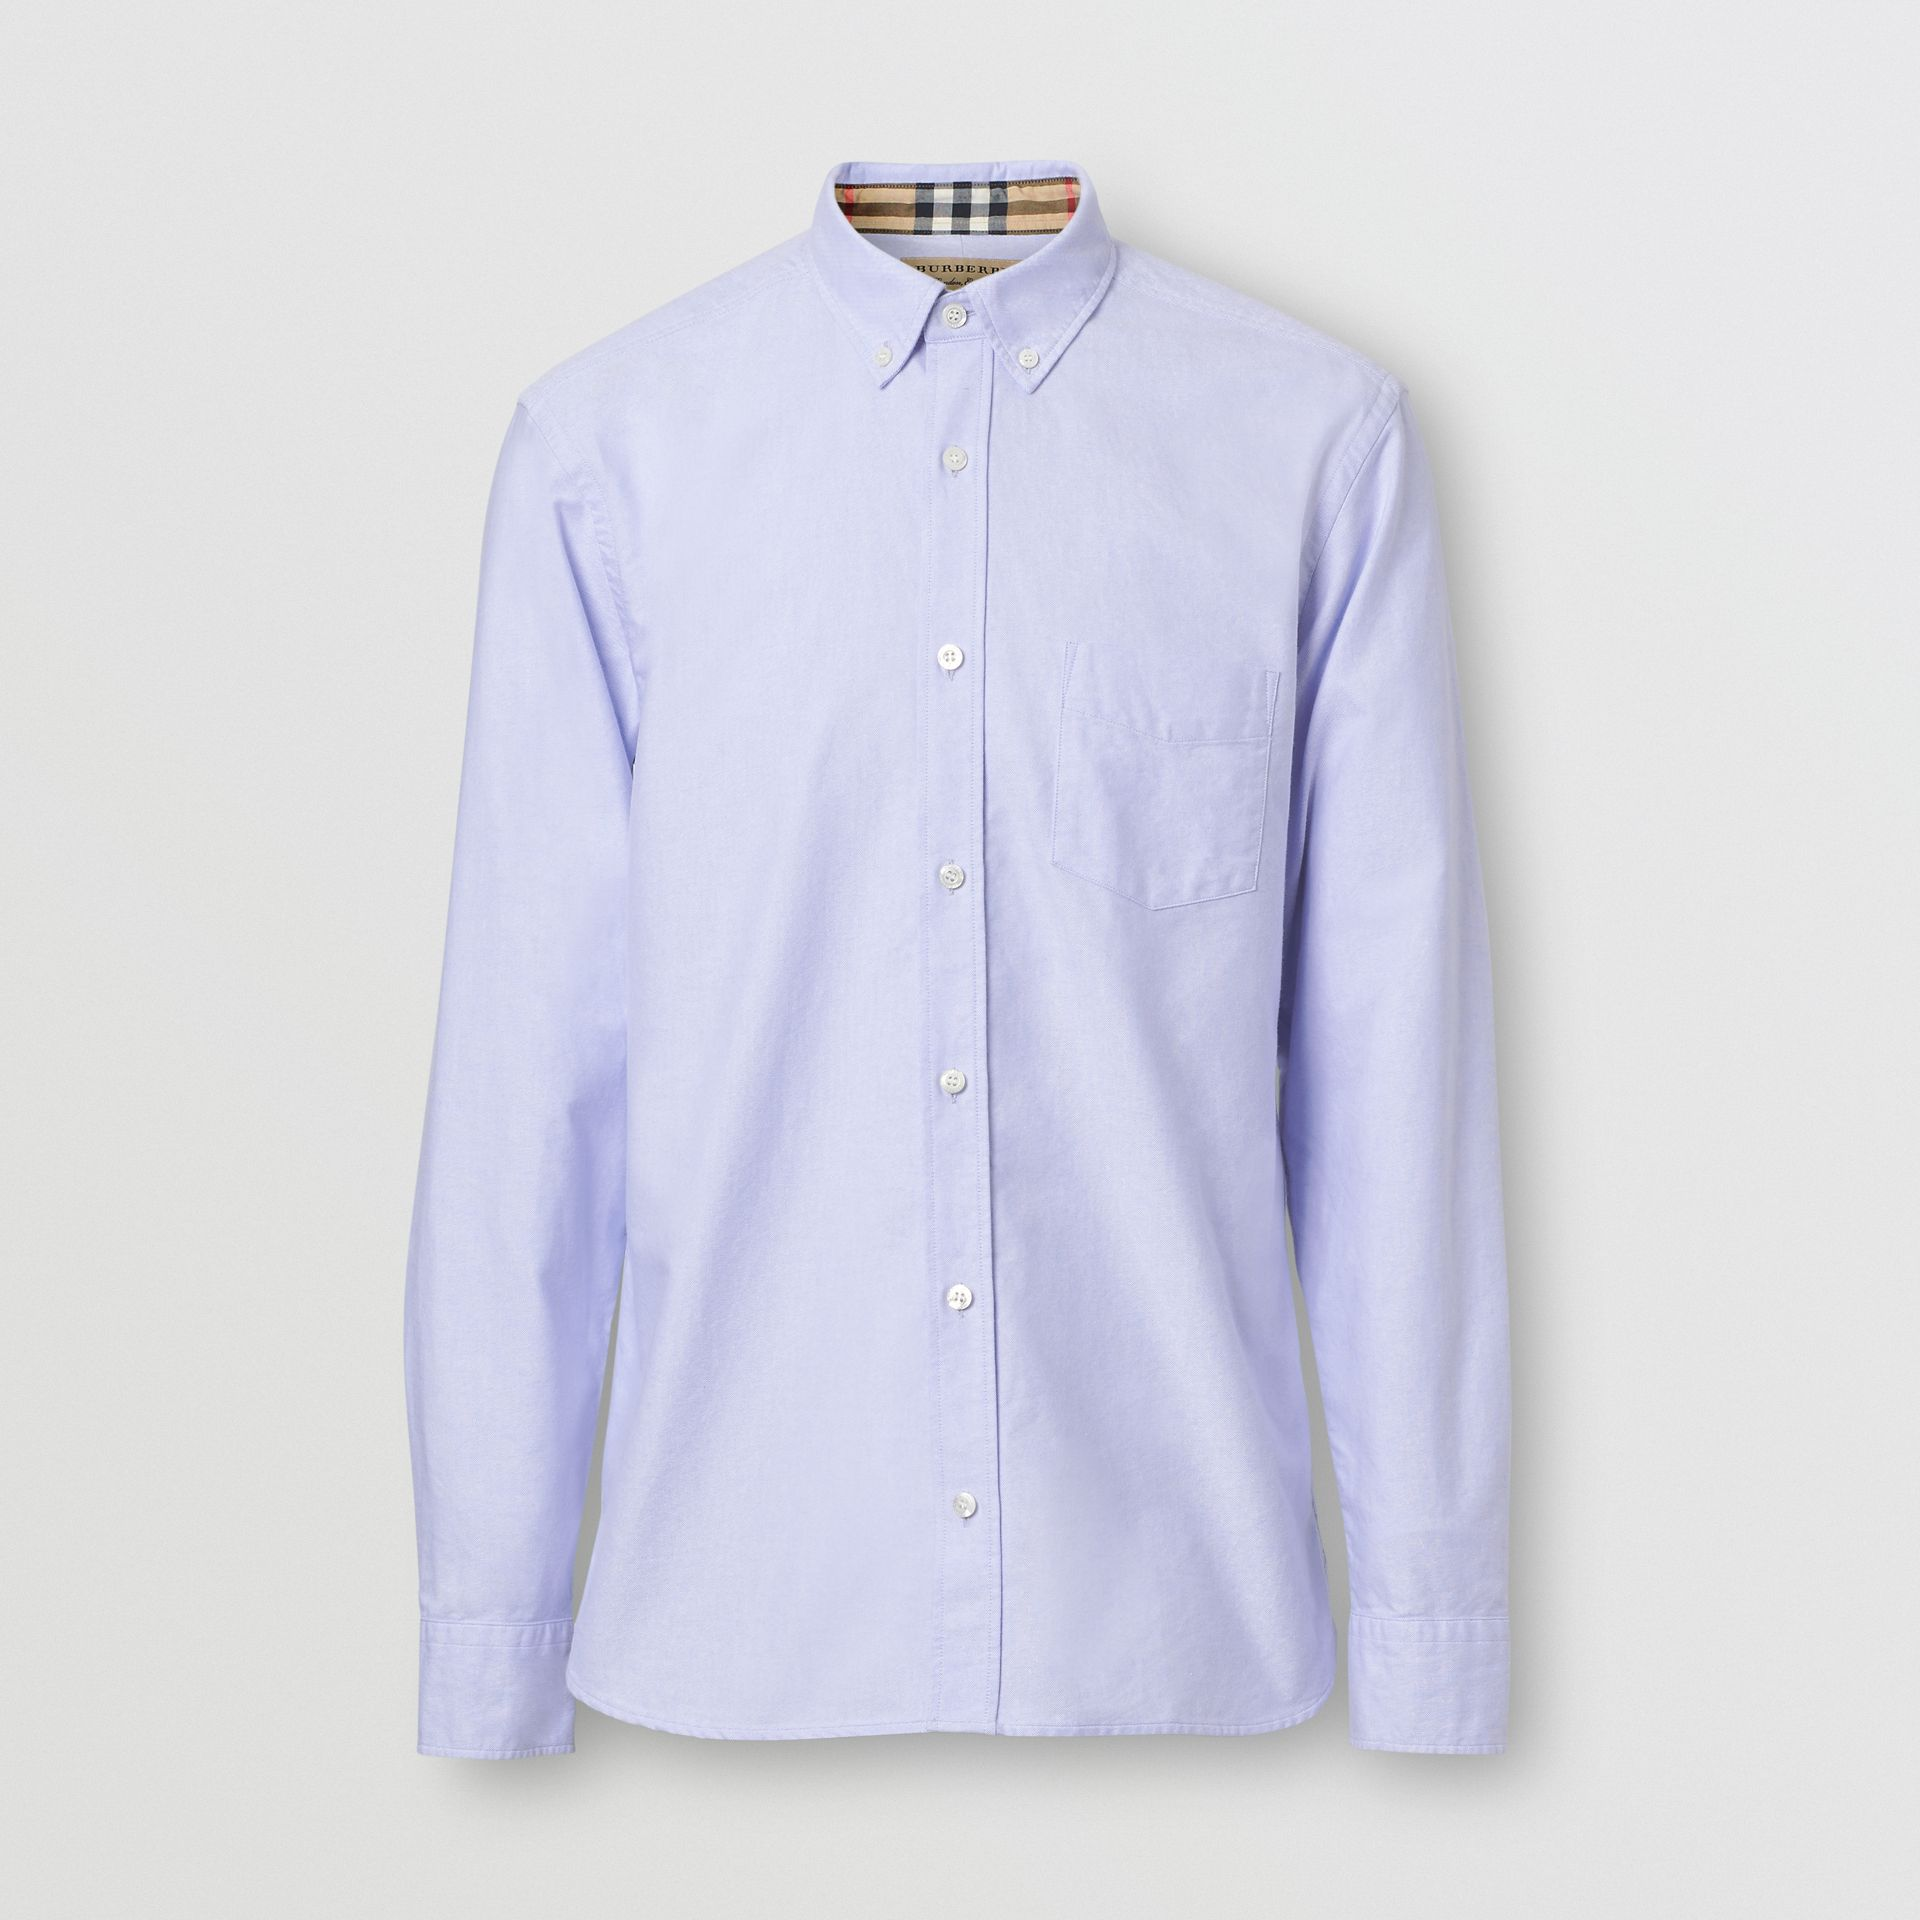 Button-down Collar Cotton Oxford Shirt in Cornflower Blue - Men | Burberry - gallery image 3